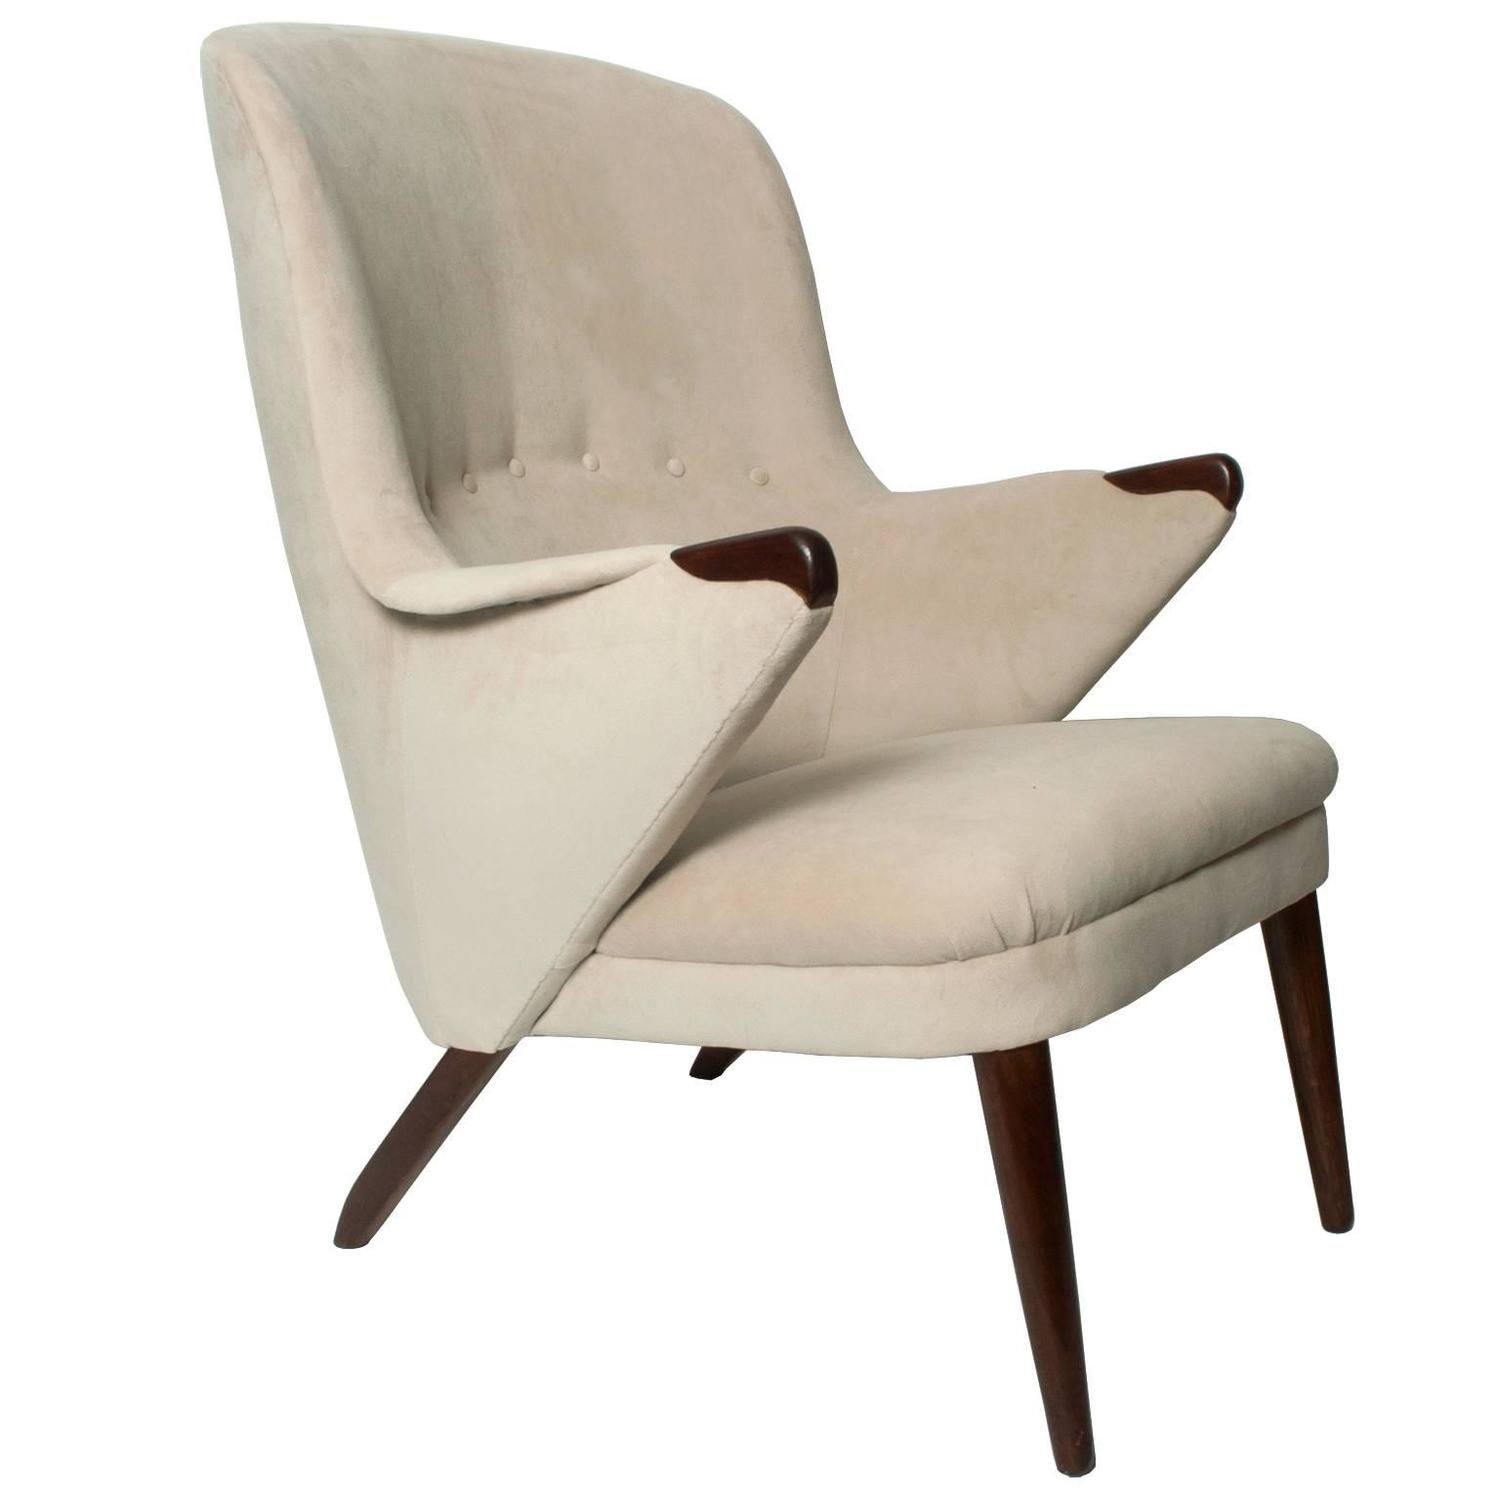 Scandinavian modern curved high back upholstered lounge chair with teak legs for sale at 1stdibs - Scandinavian chair ...